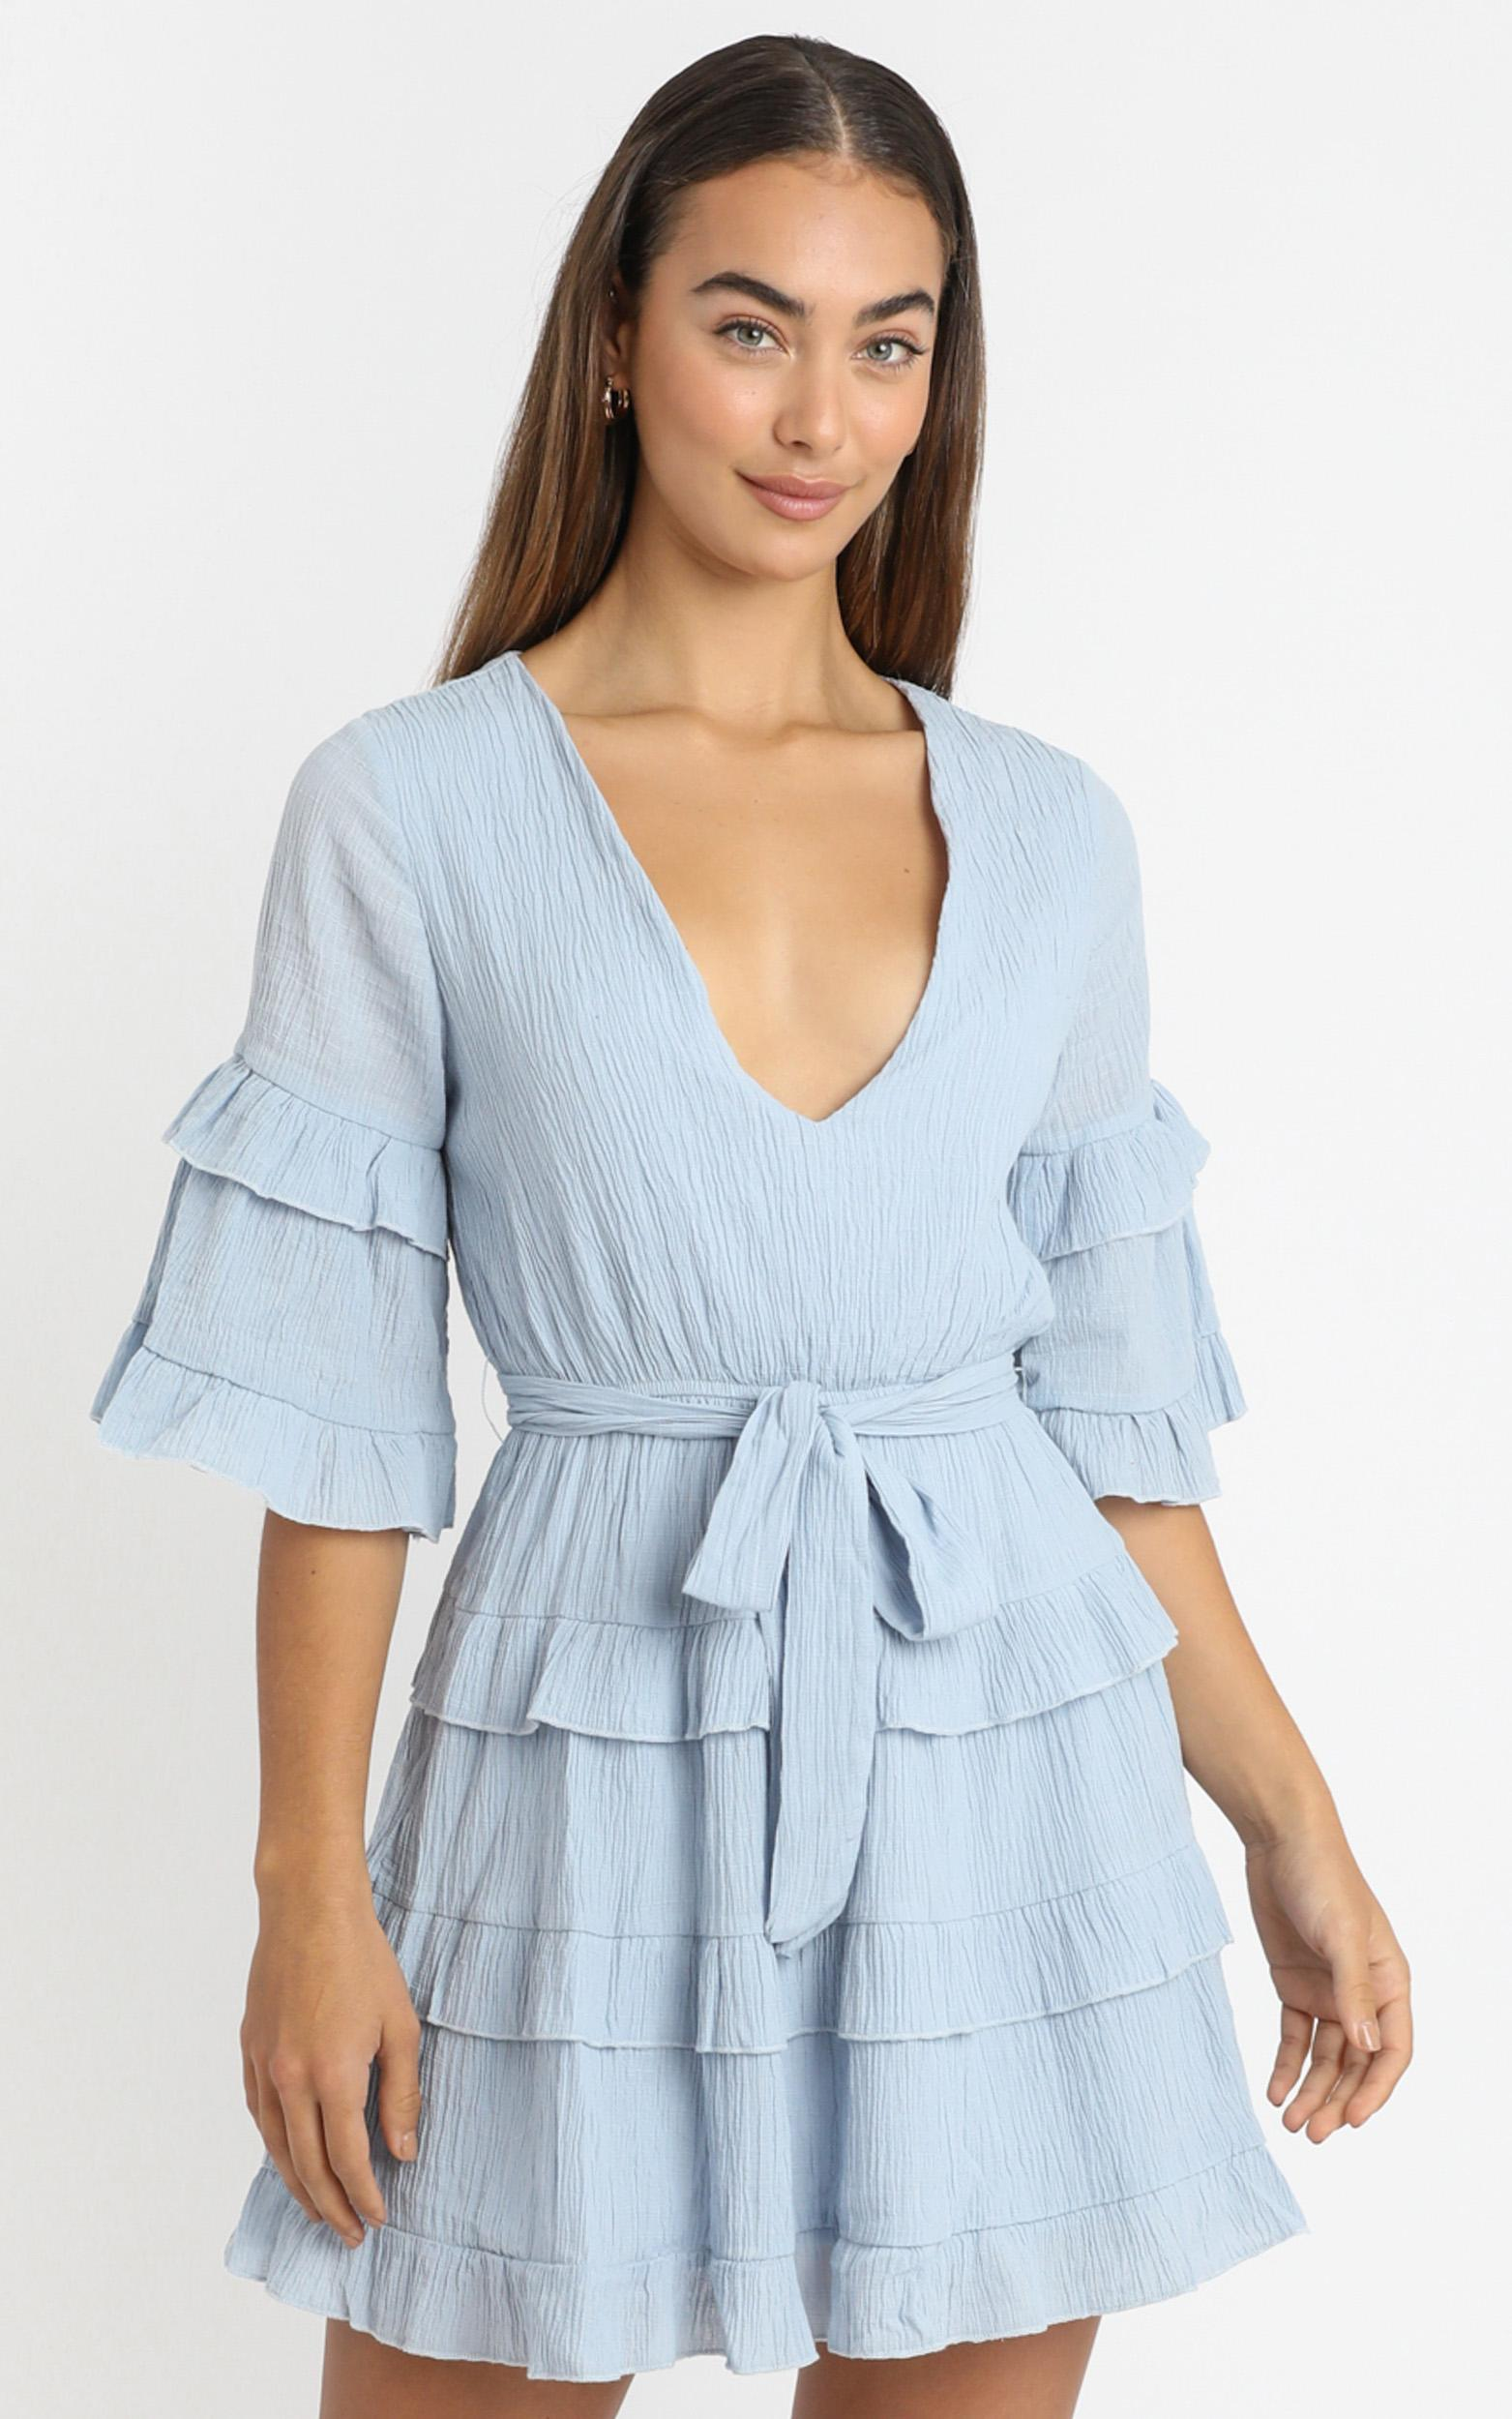 Meet Me In The Sun Dress in blue - 20 (XXXXL), Blue, hi-res image number null